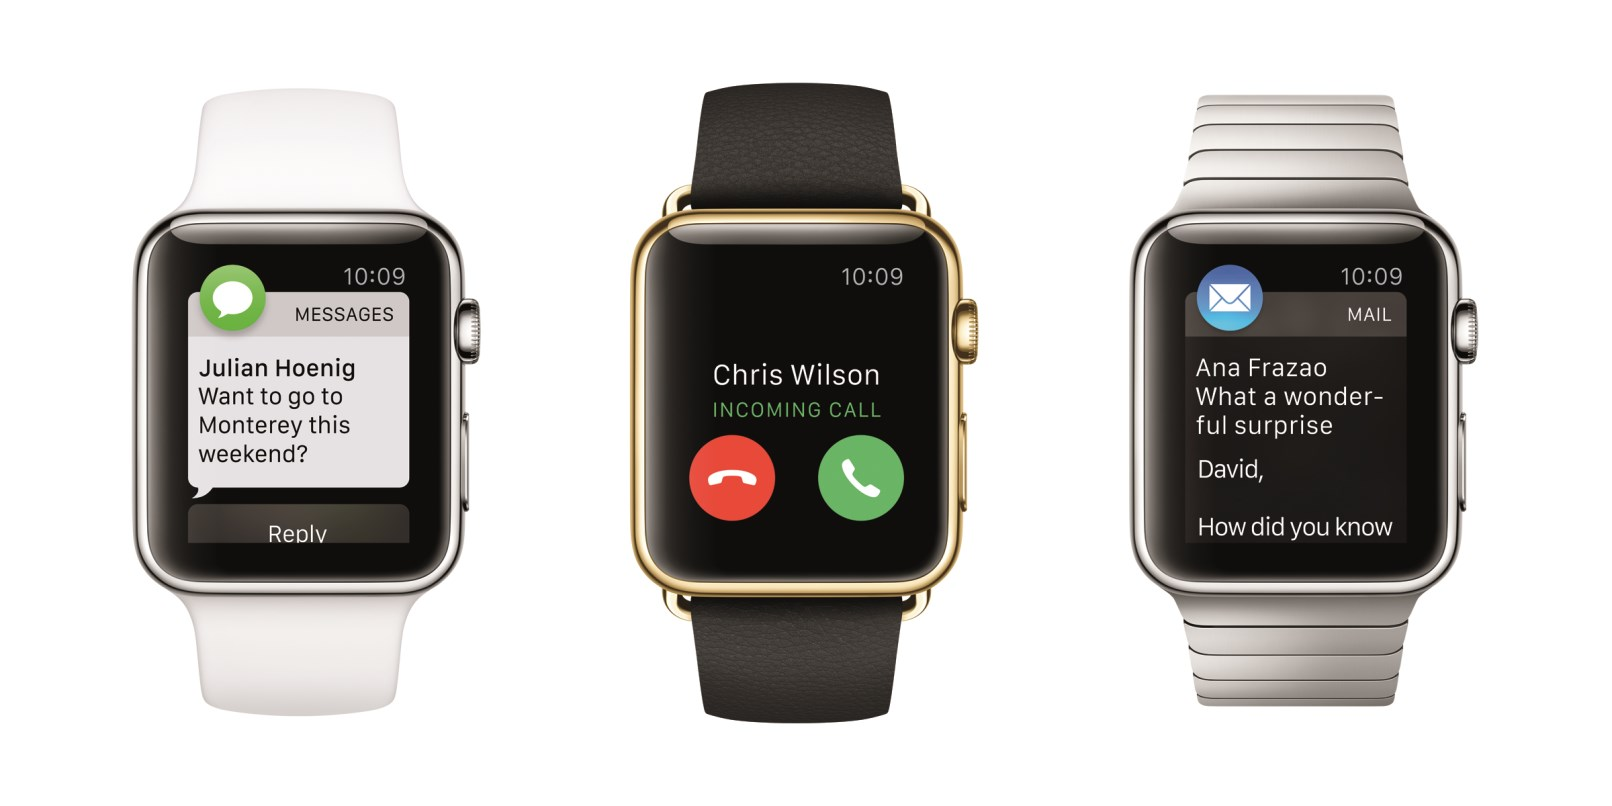 Roundup: The First Reviews of the Apple Watch